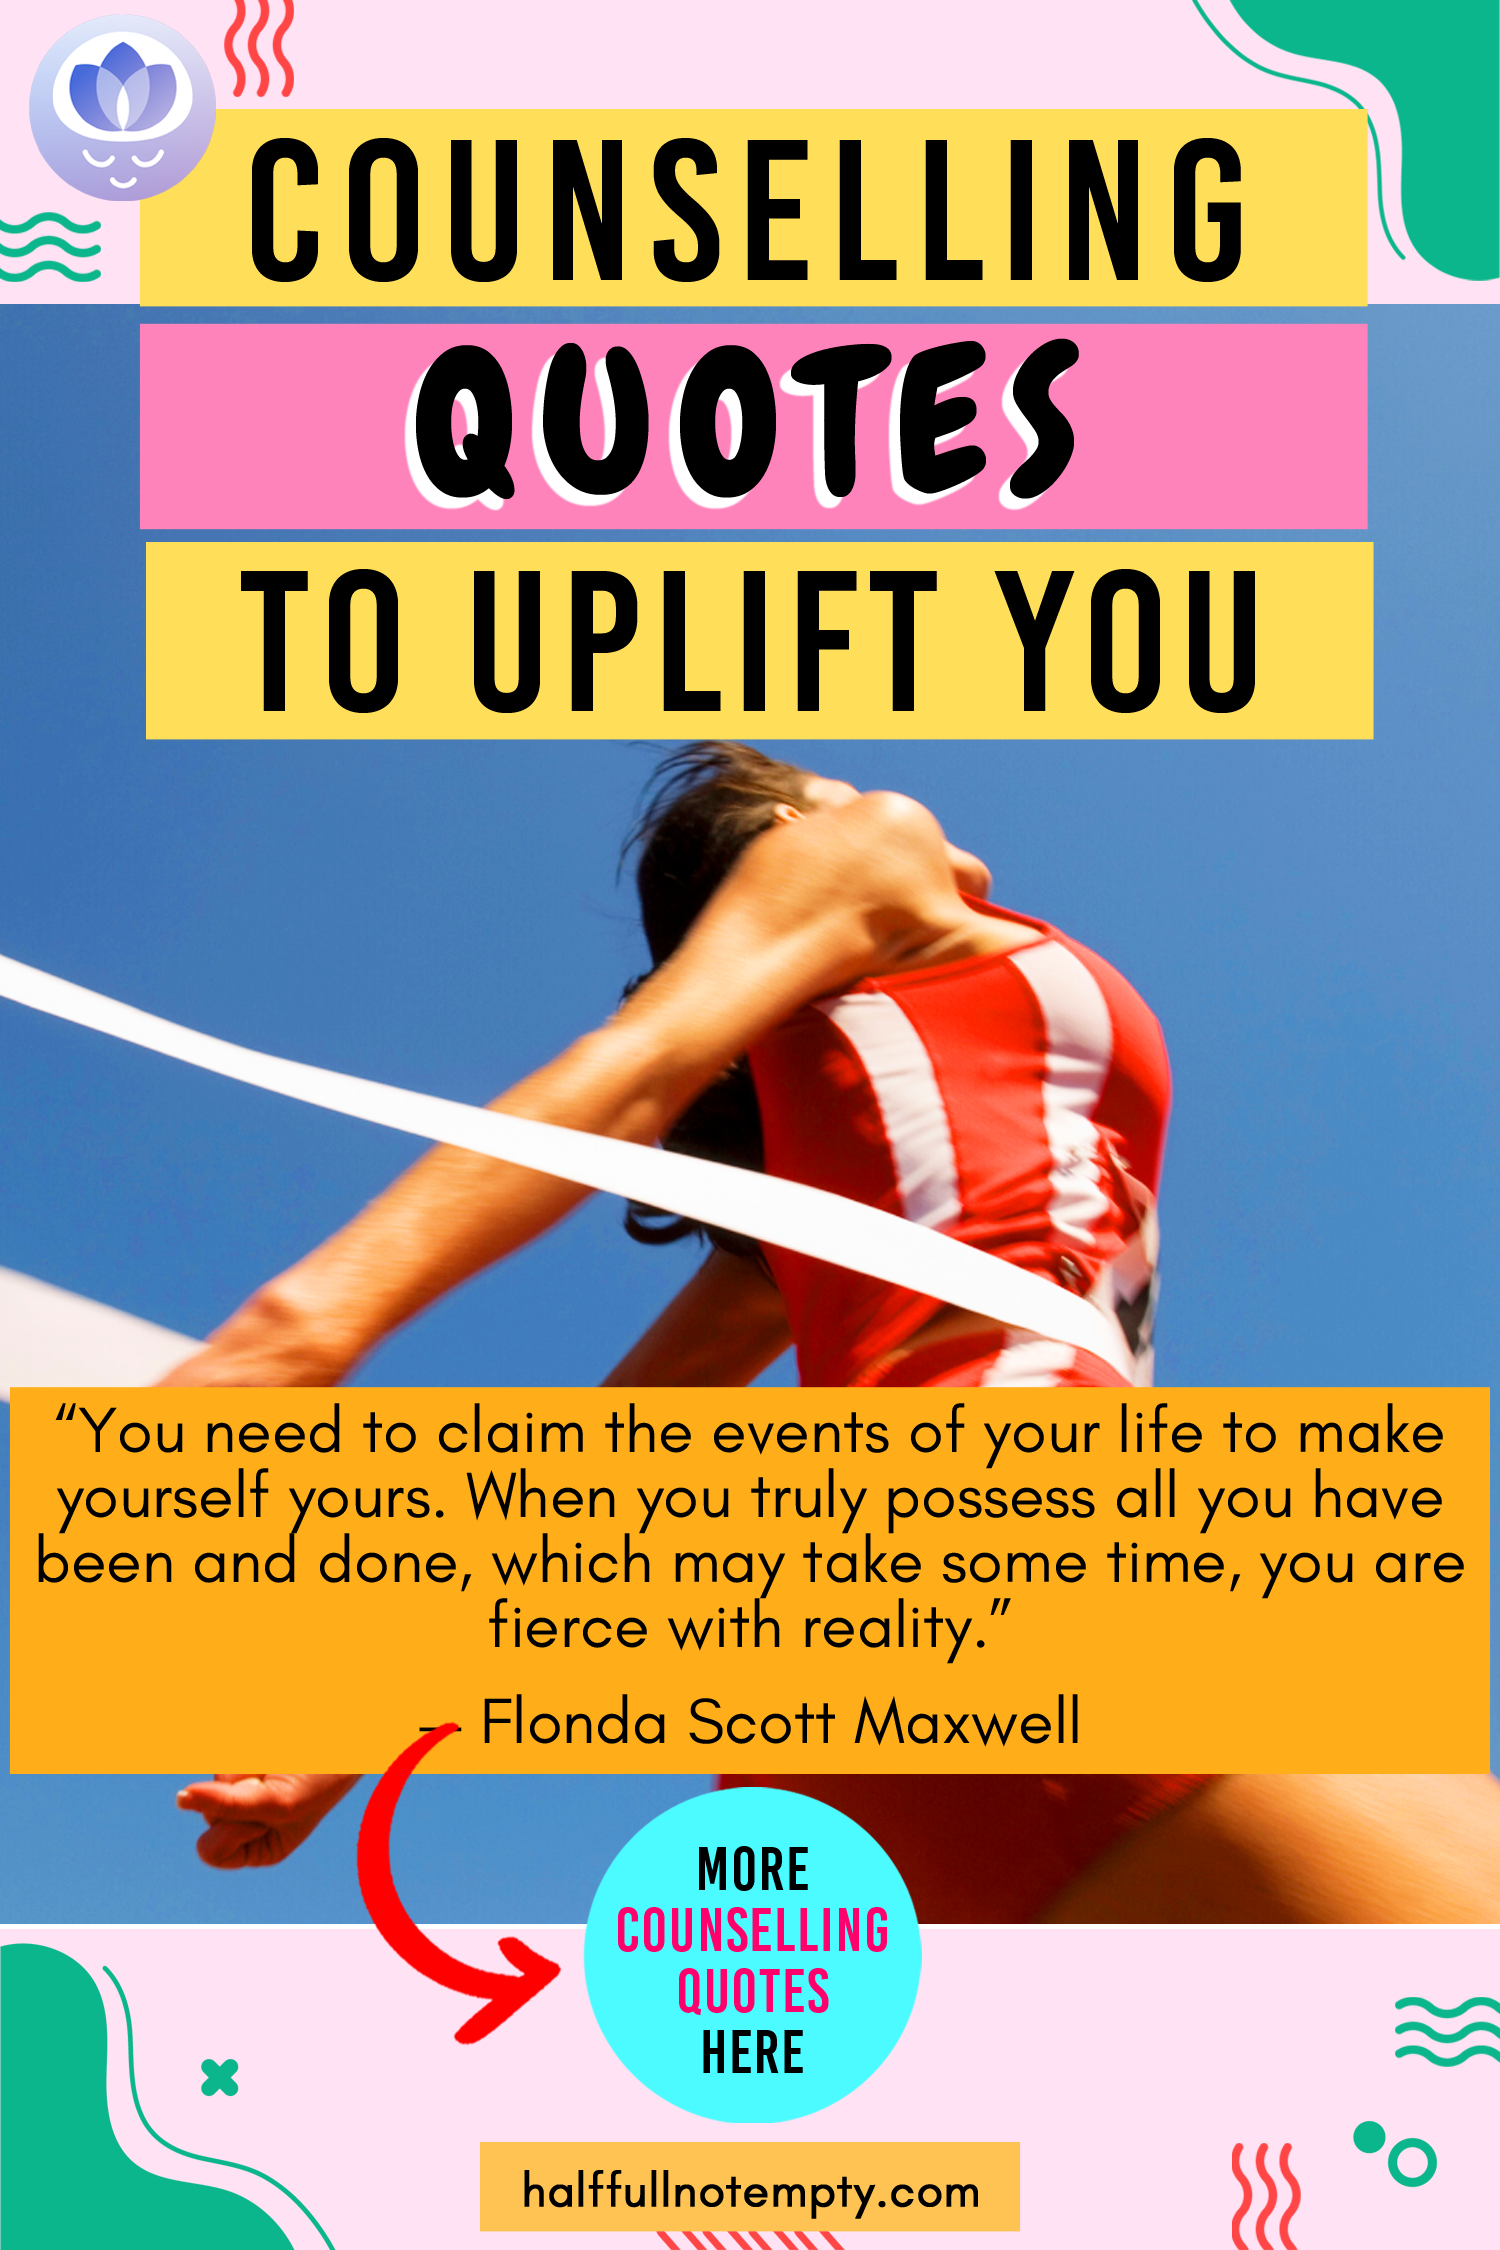 These Inspirational Counselling Quotes Could Help You With